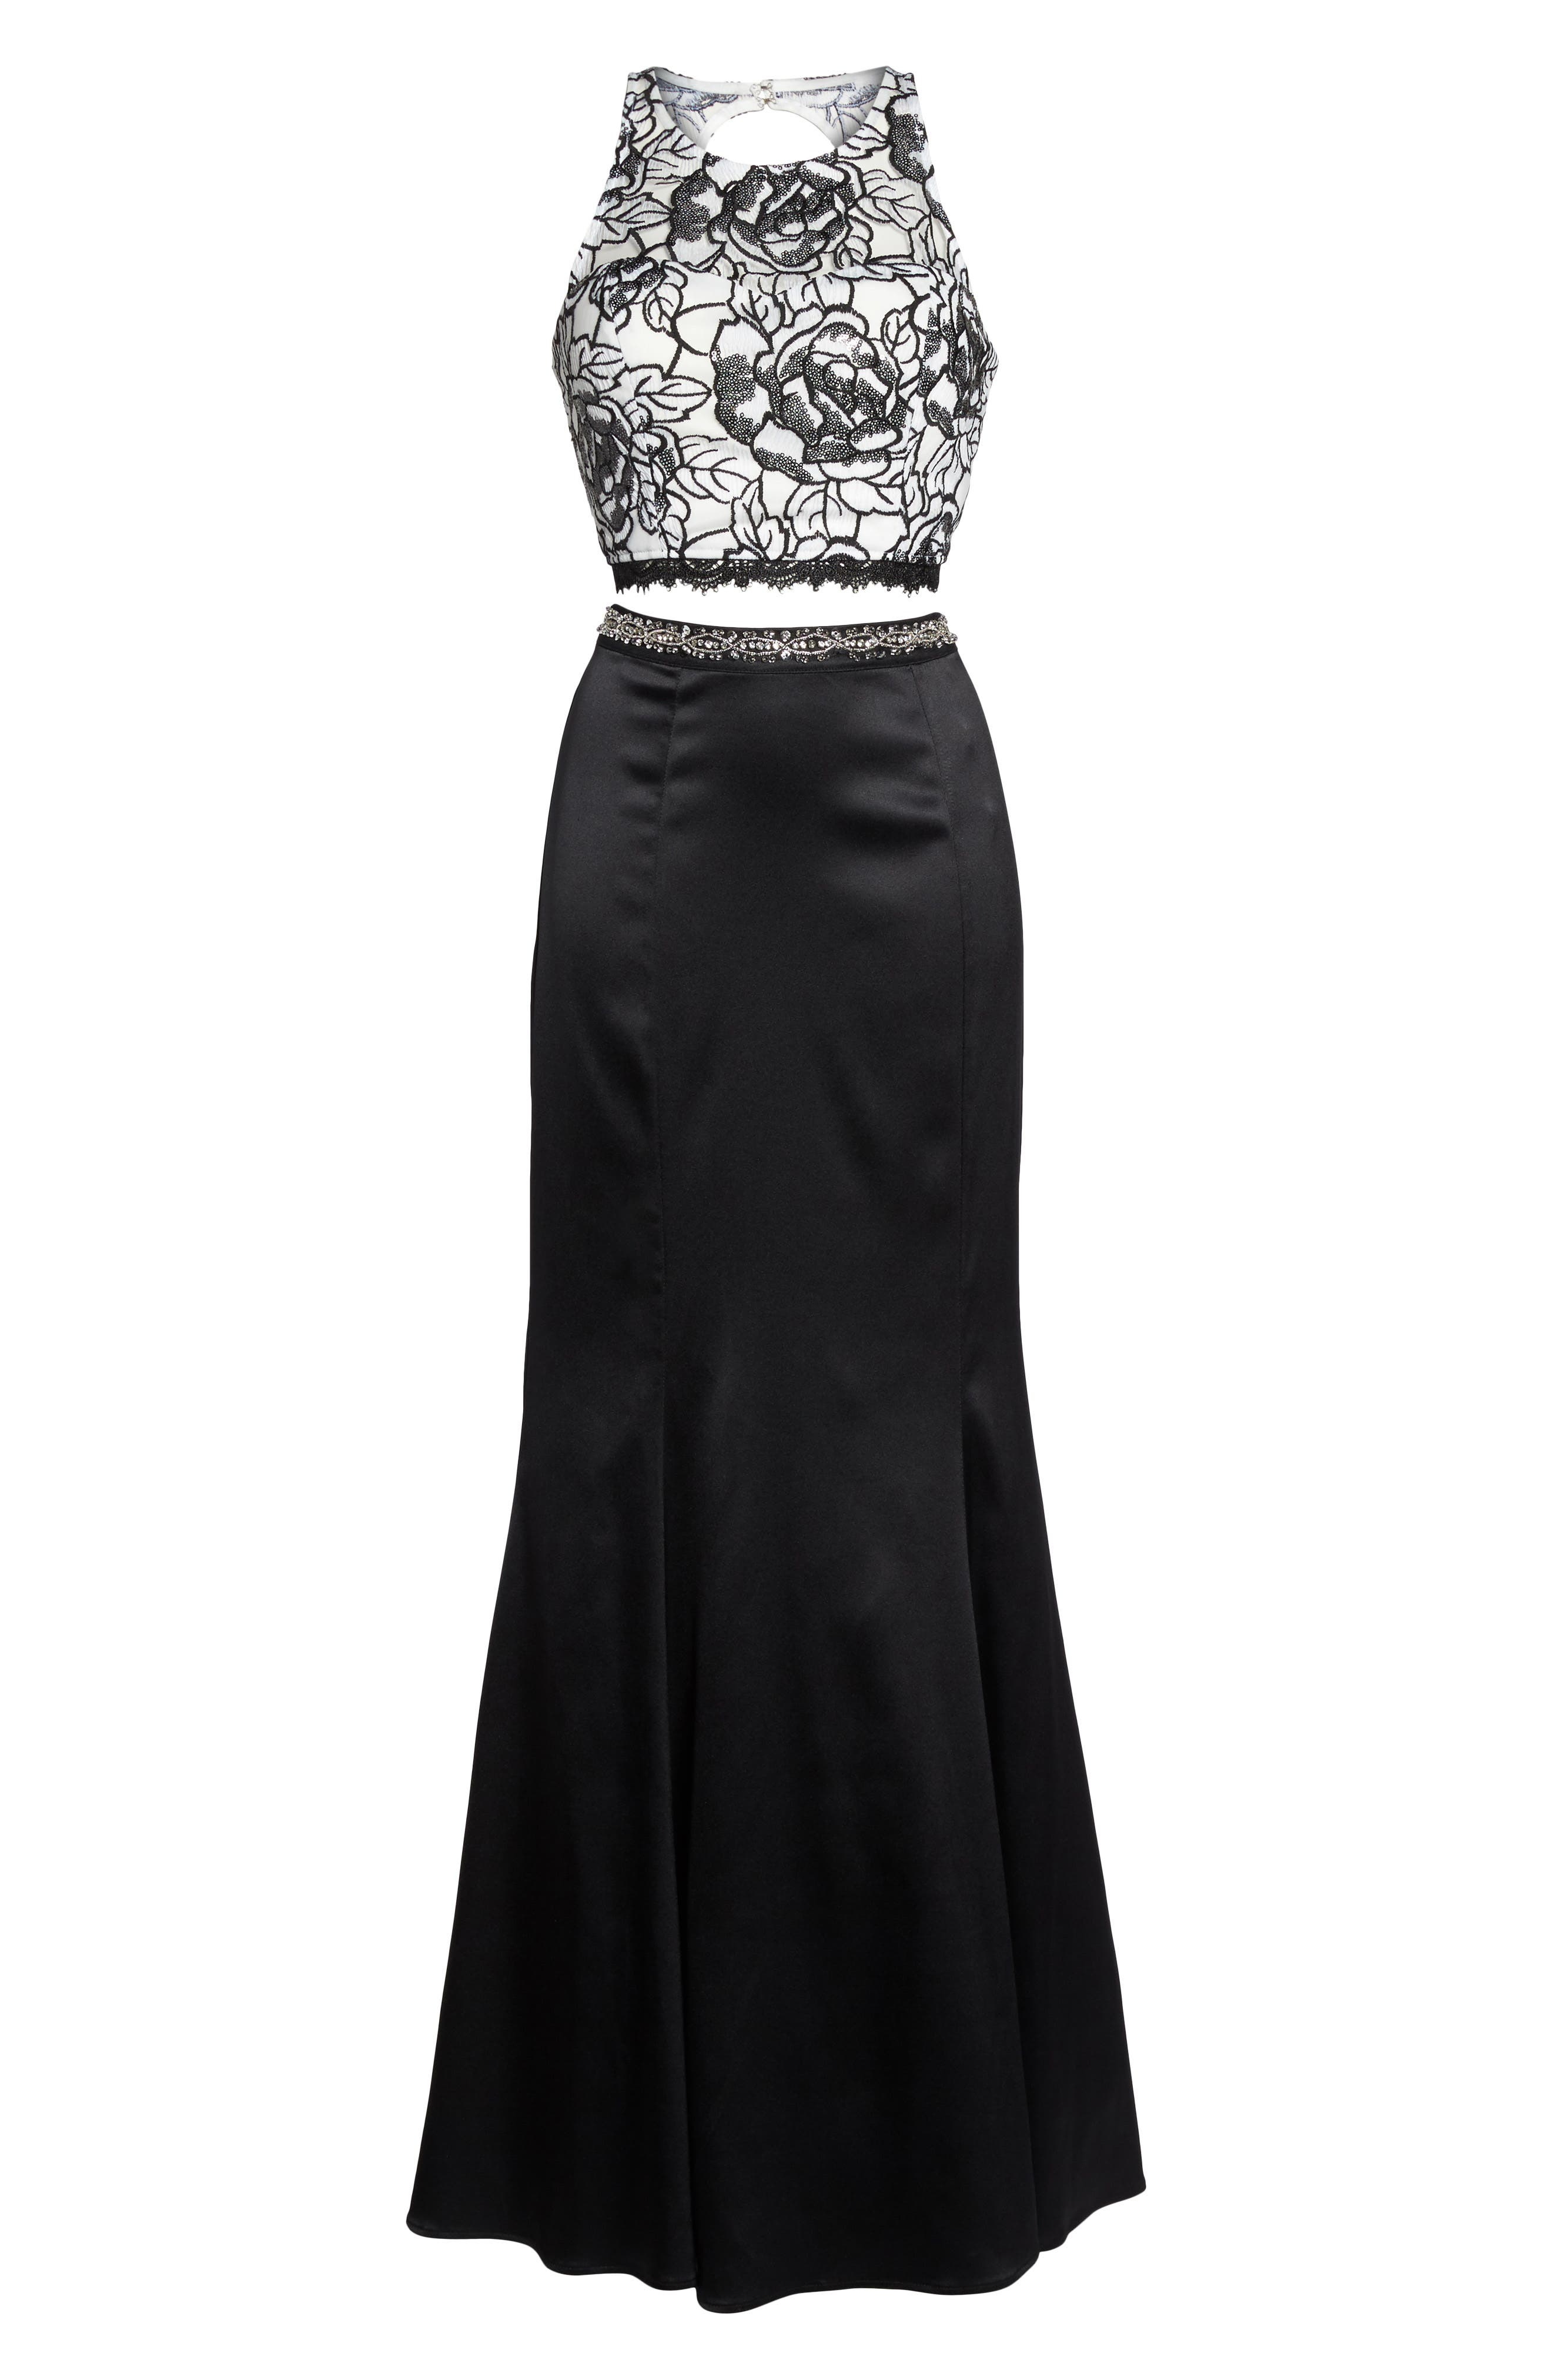 Sequined Lace Two-Piece Gown,                             Alternate thumbnail 6, color,                             Black/ Ivory